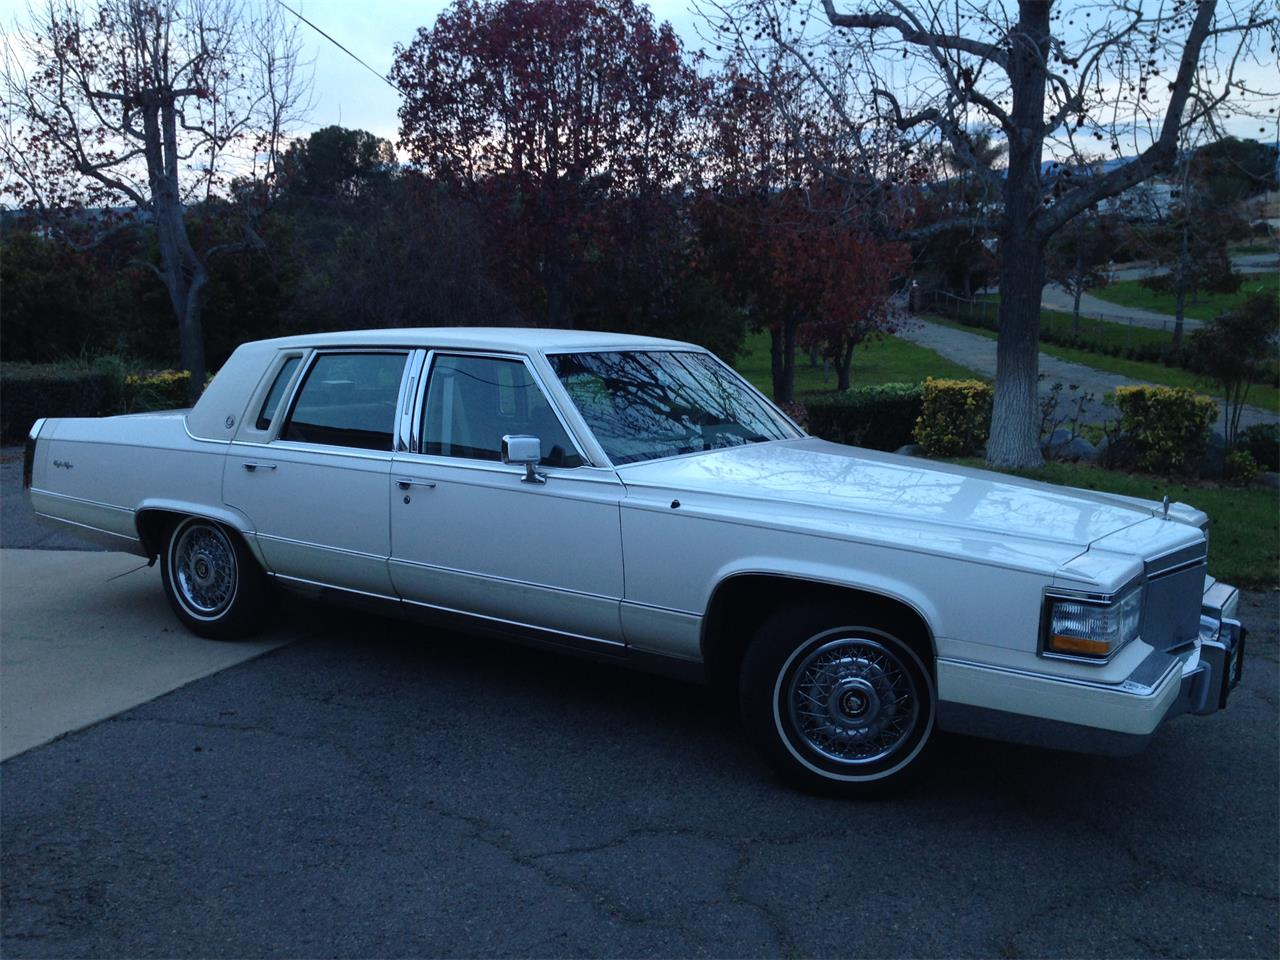 Large Picture of 1990 Brougham d'Elegance - $17,900.00 Offered by a Private Seller - LR7K